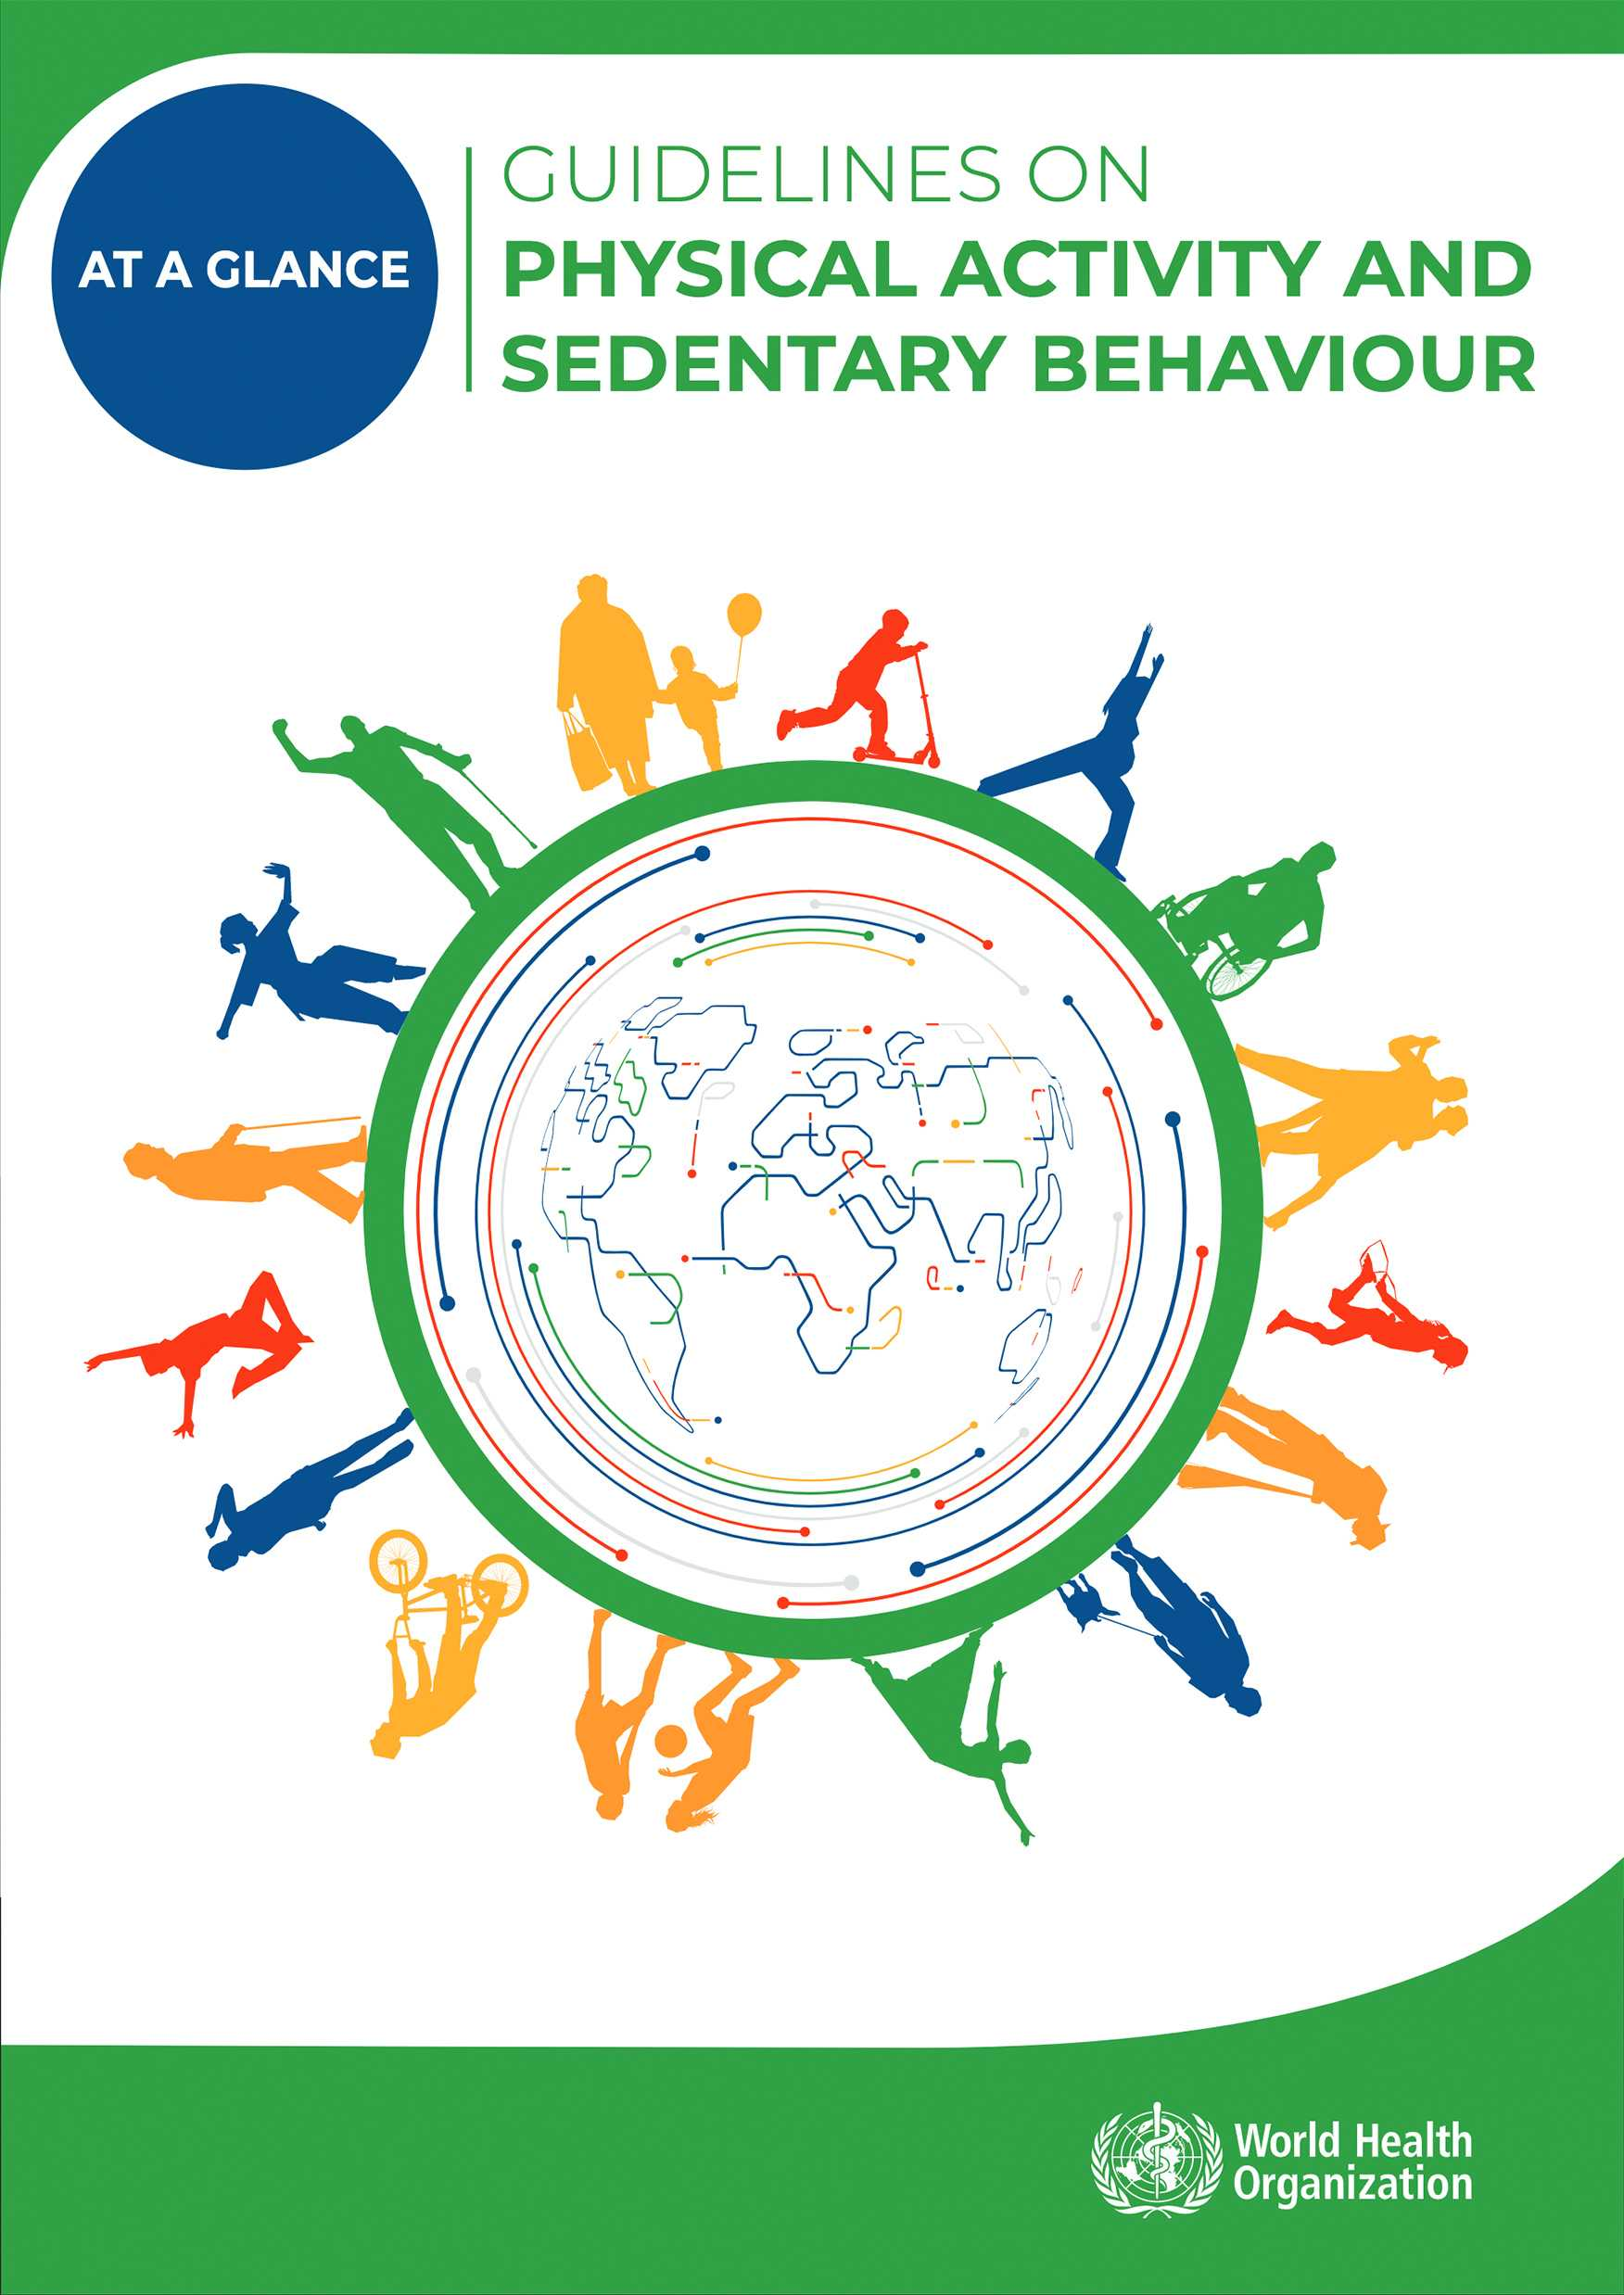 Guidelines On Physical Activity and Sedentary Behaviour (Gratis)